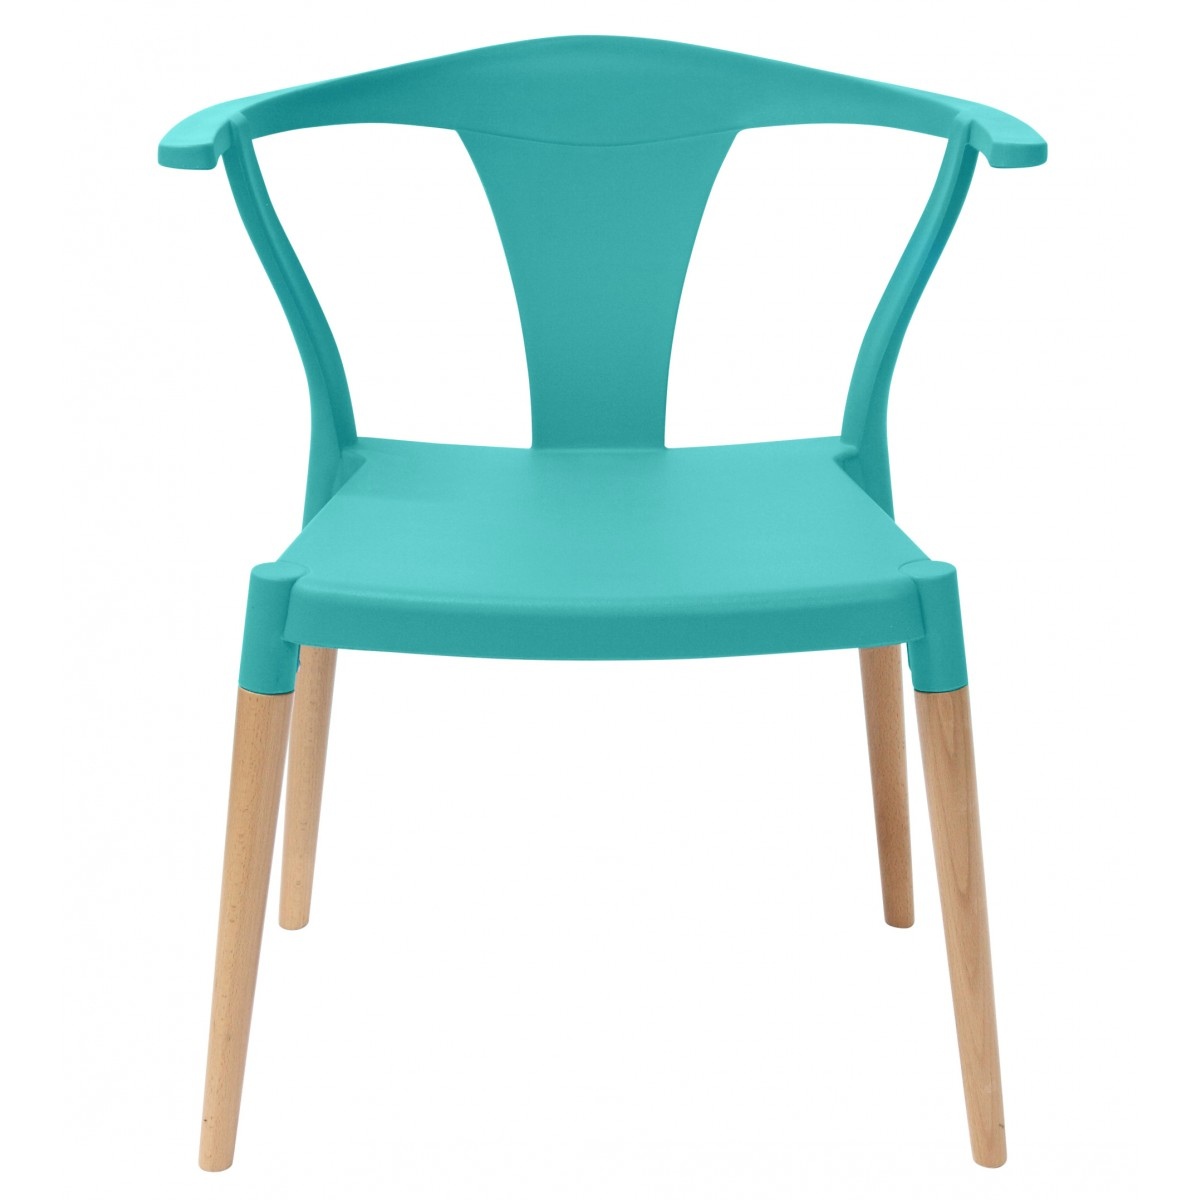 turquoise accent chairs swing chair johor bahru icon series modern dining arm beech